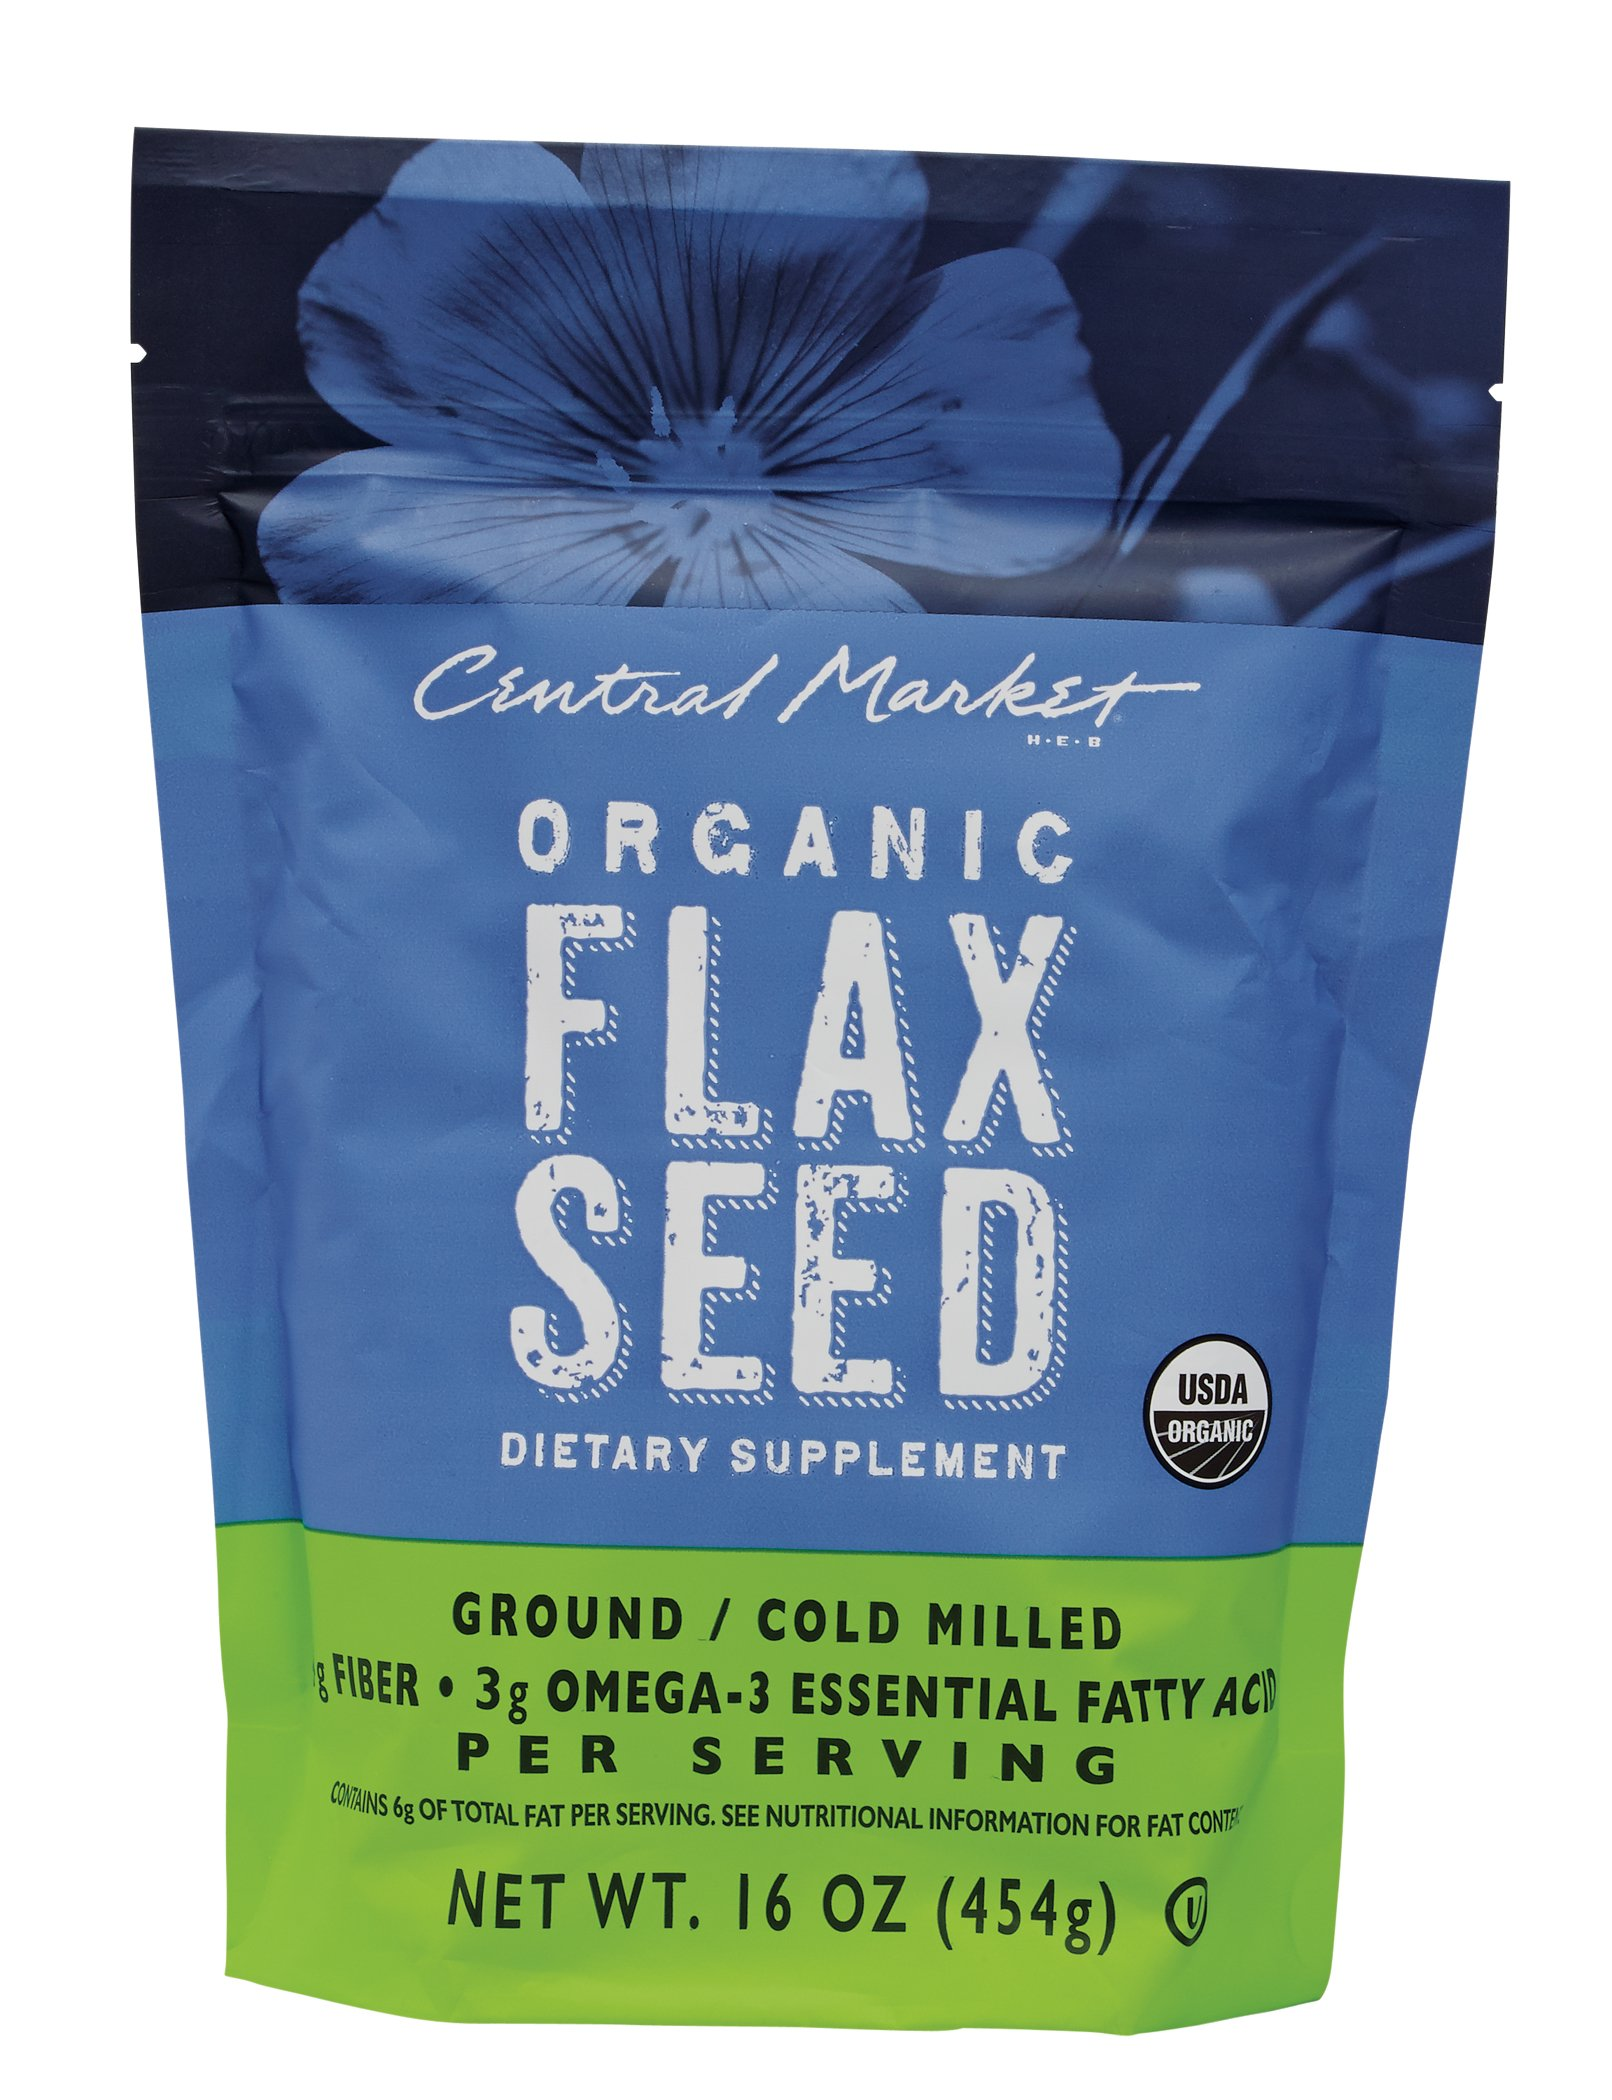 Bulk flax seed for crafts - Central Market Organic Flaxseed Dietary Supplement